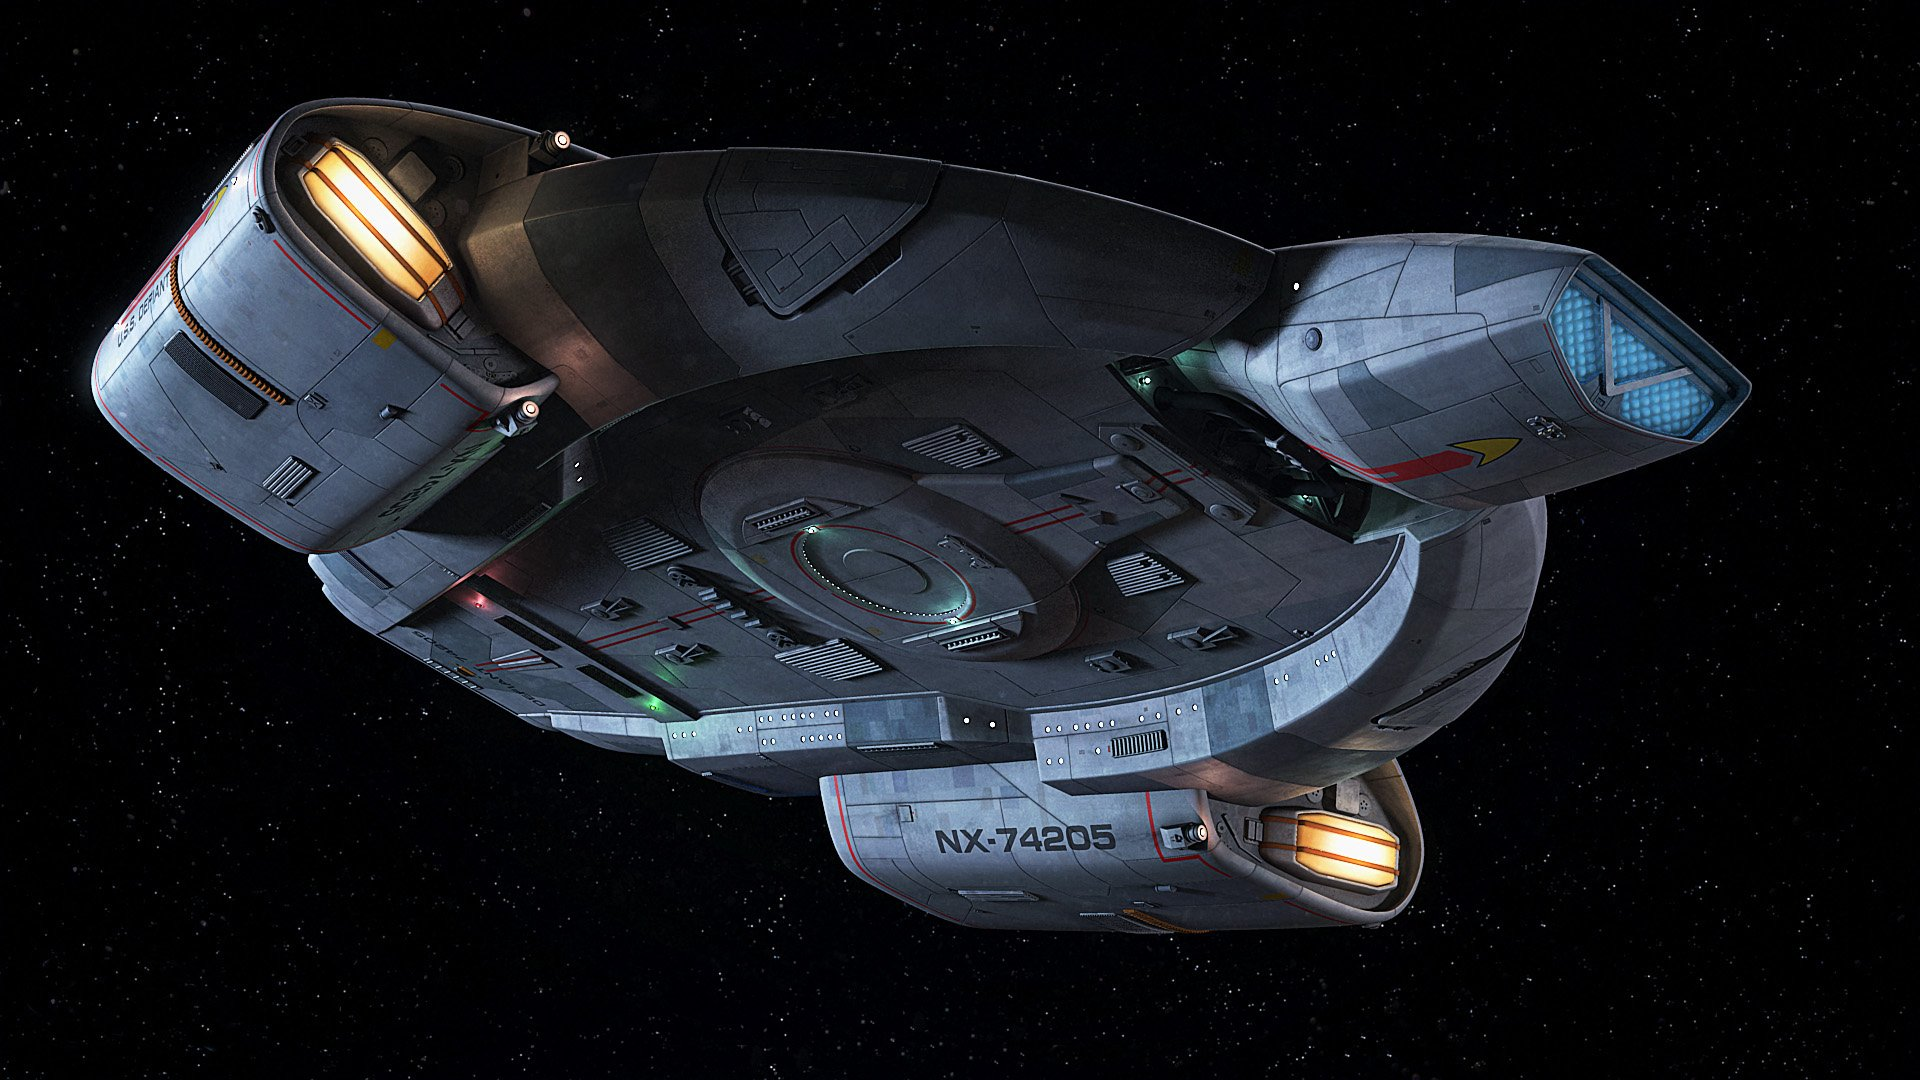 DEEP SPACE NINE Star Trek futuristic television sci fi spaceship 14 1920x1080